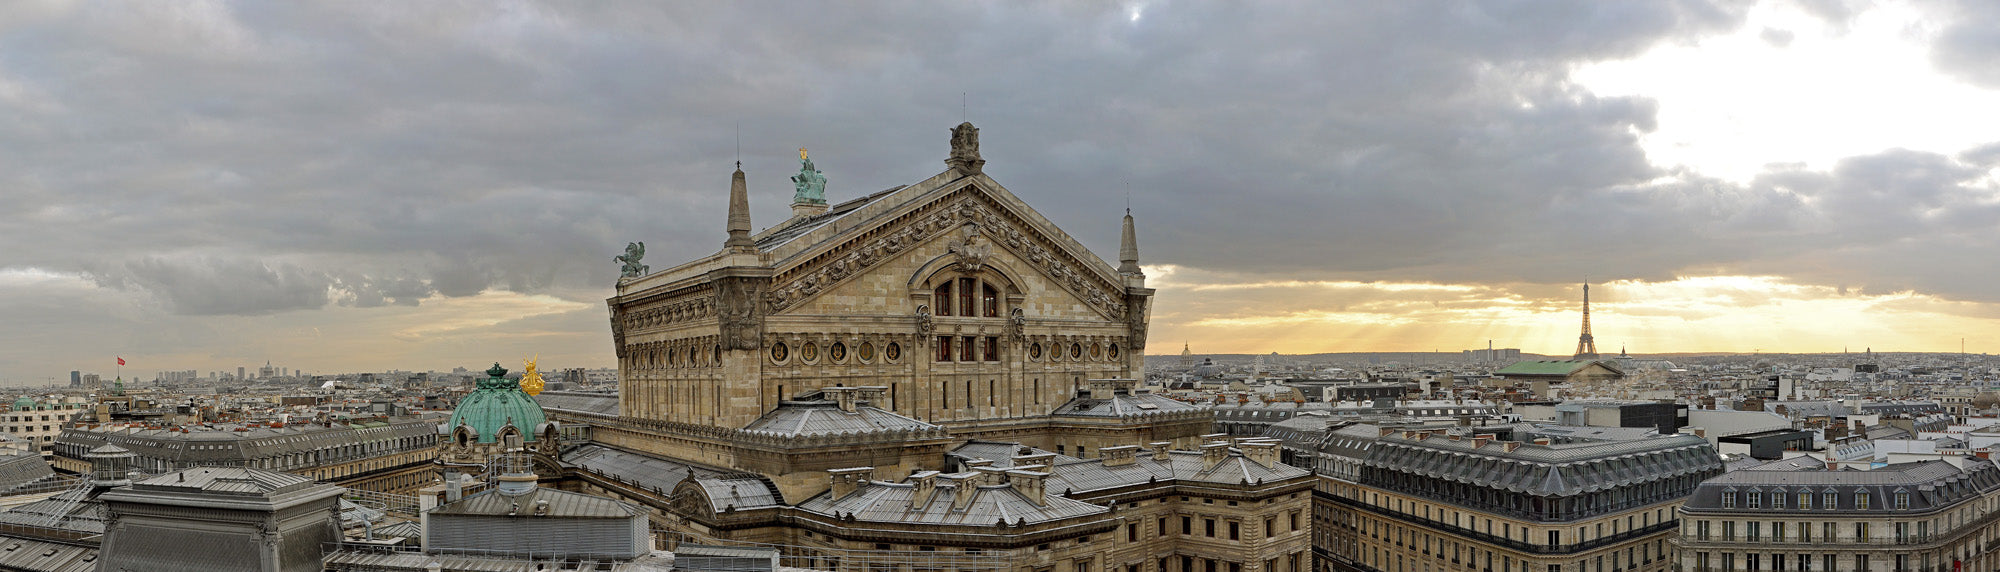 Skyline of Paris & Opera Garnier - Limited Edition 50 cm x 175 cm